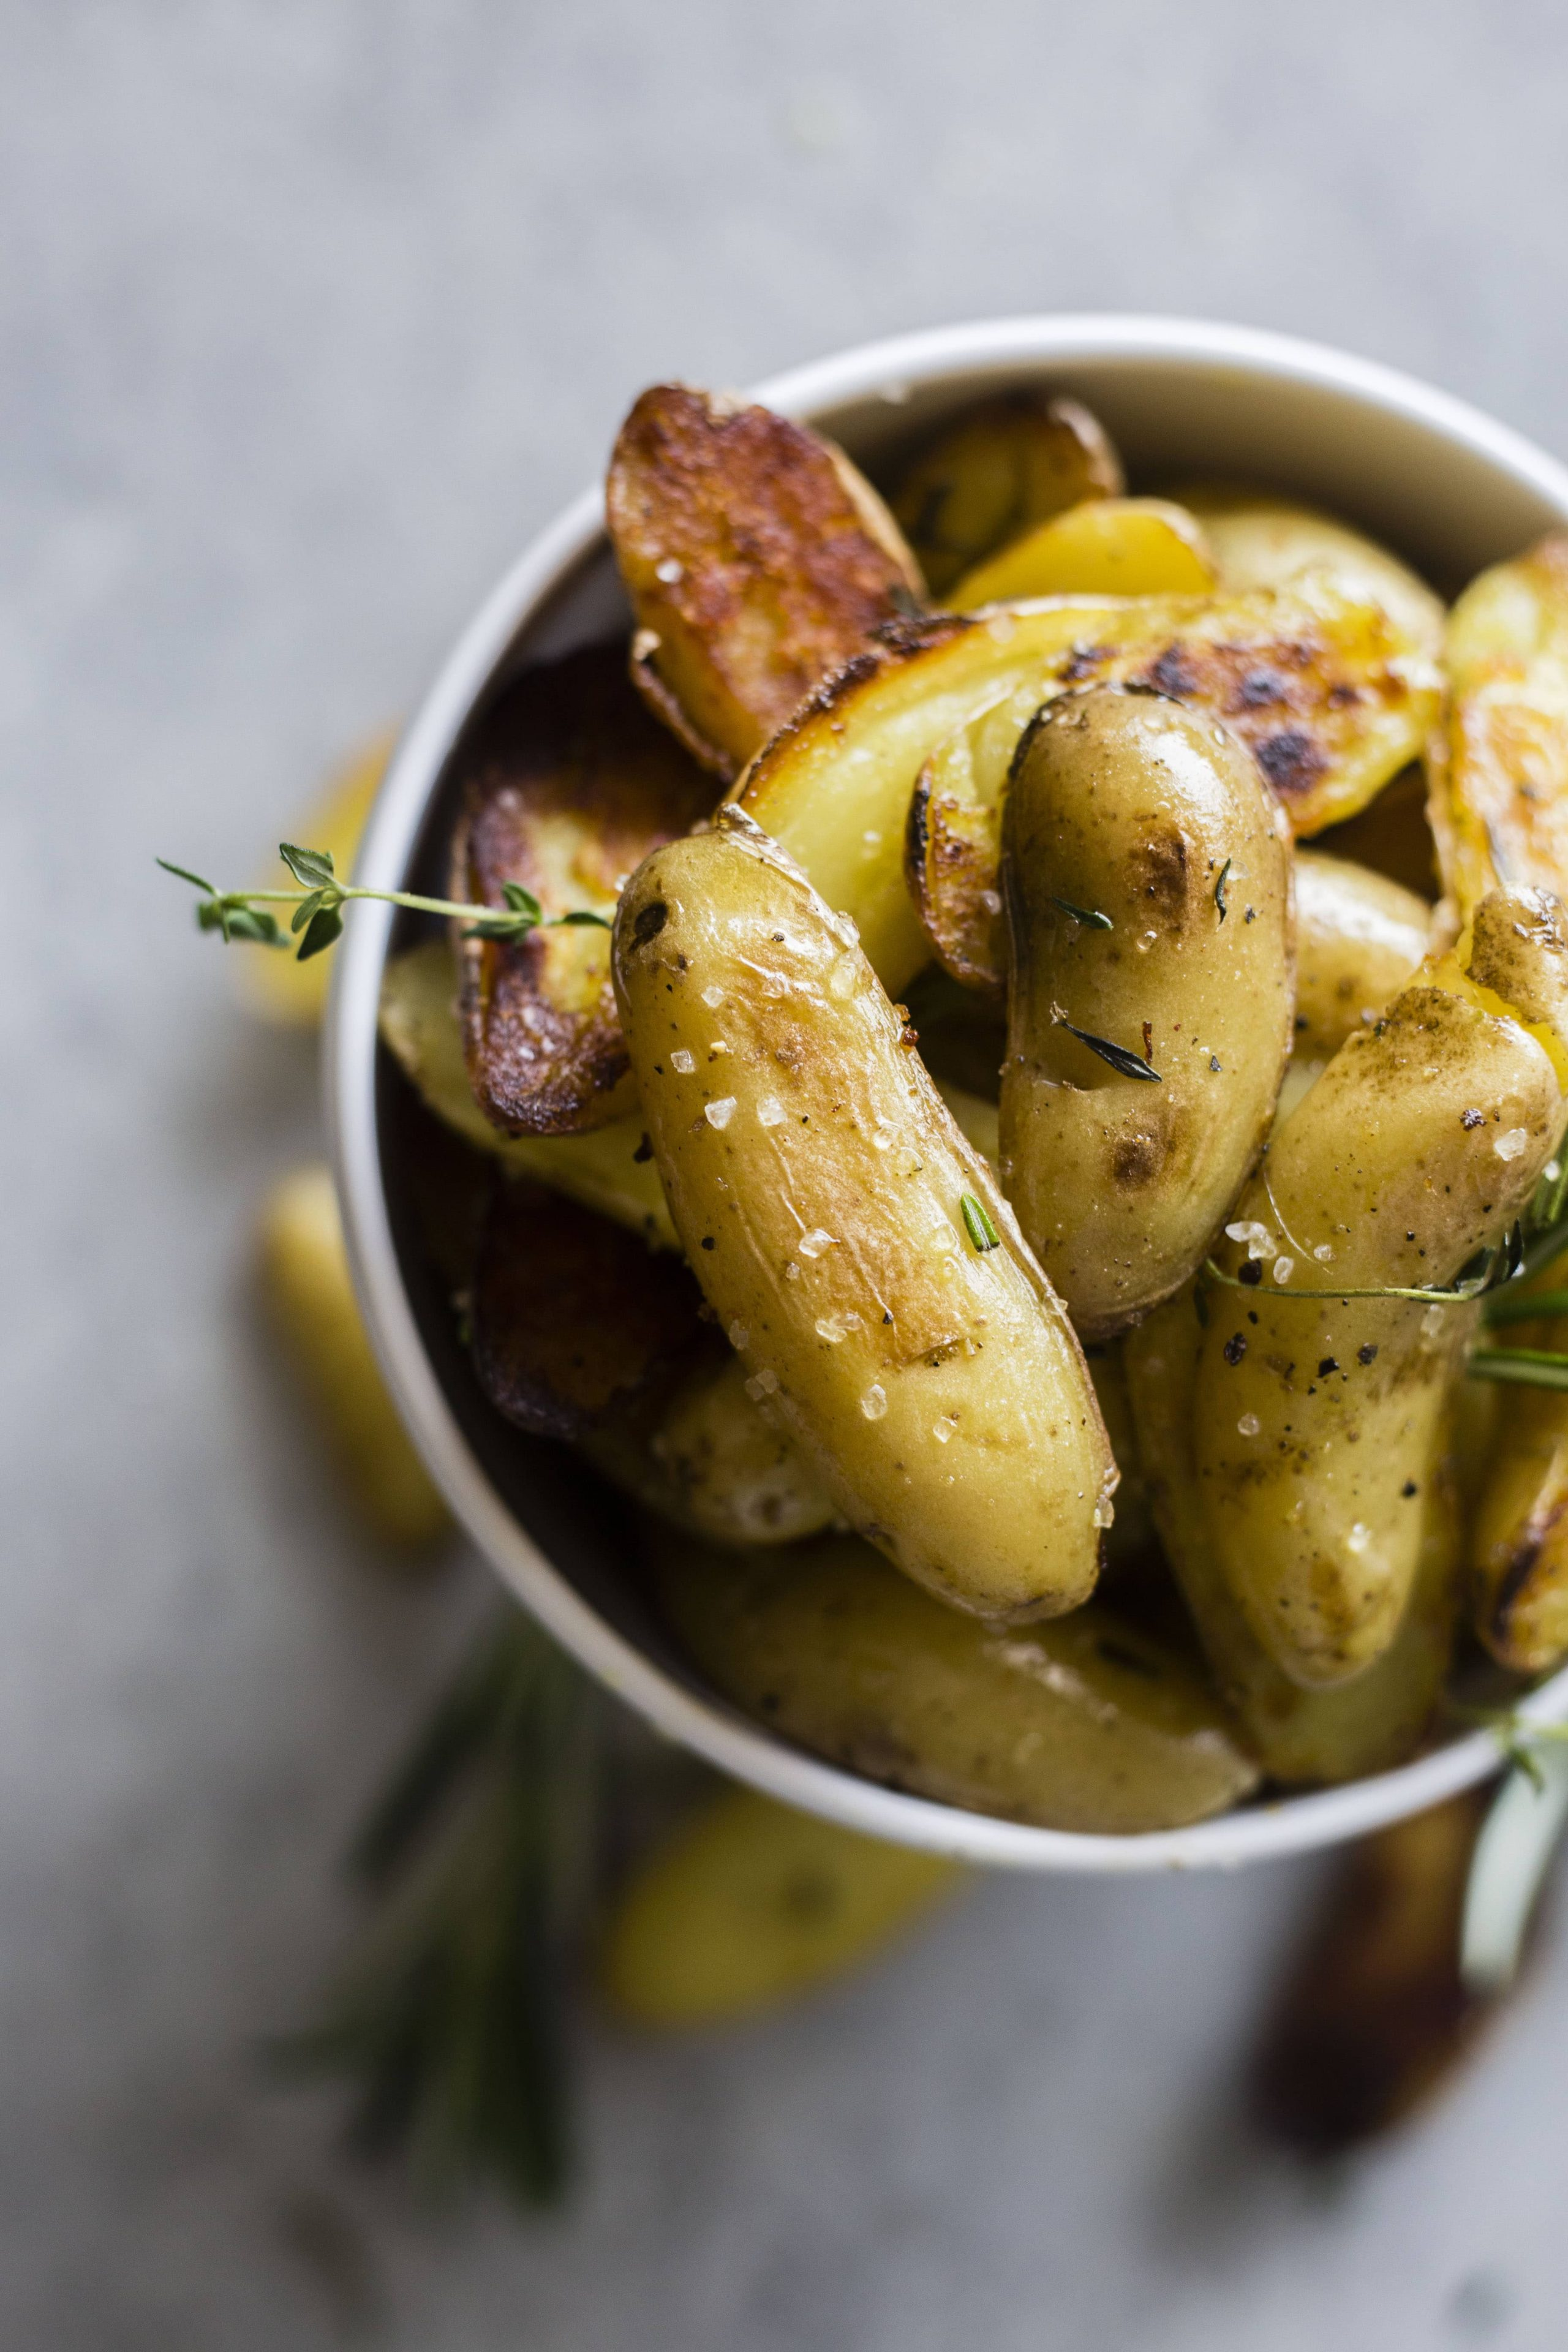 Skillet Roasted Potatoes | Crispy potatoes you can make on the skillet and enjoy for breakfast or as a side | thealmondeater.com